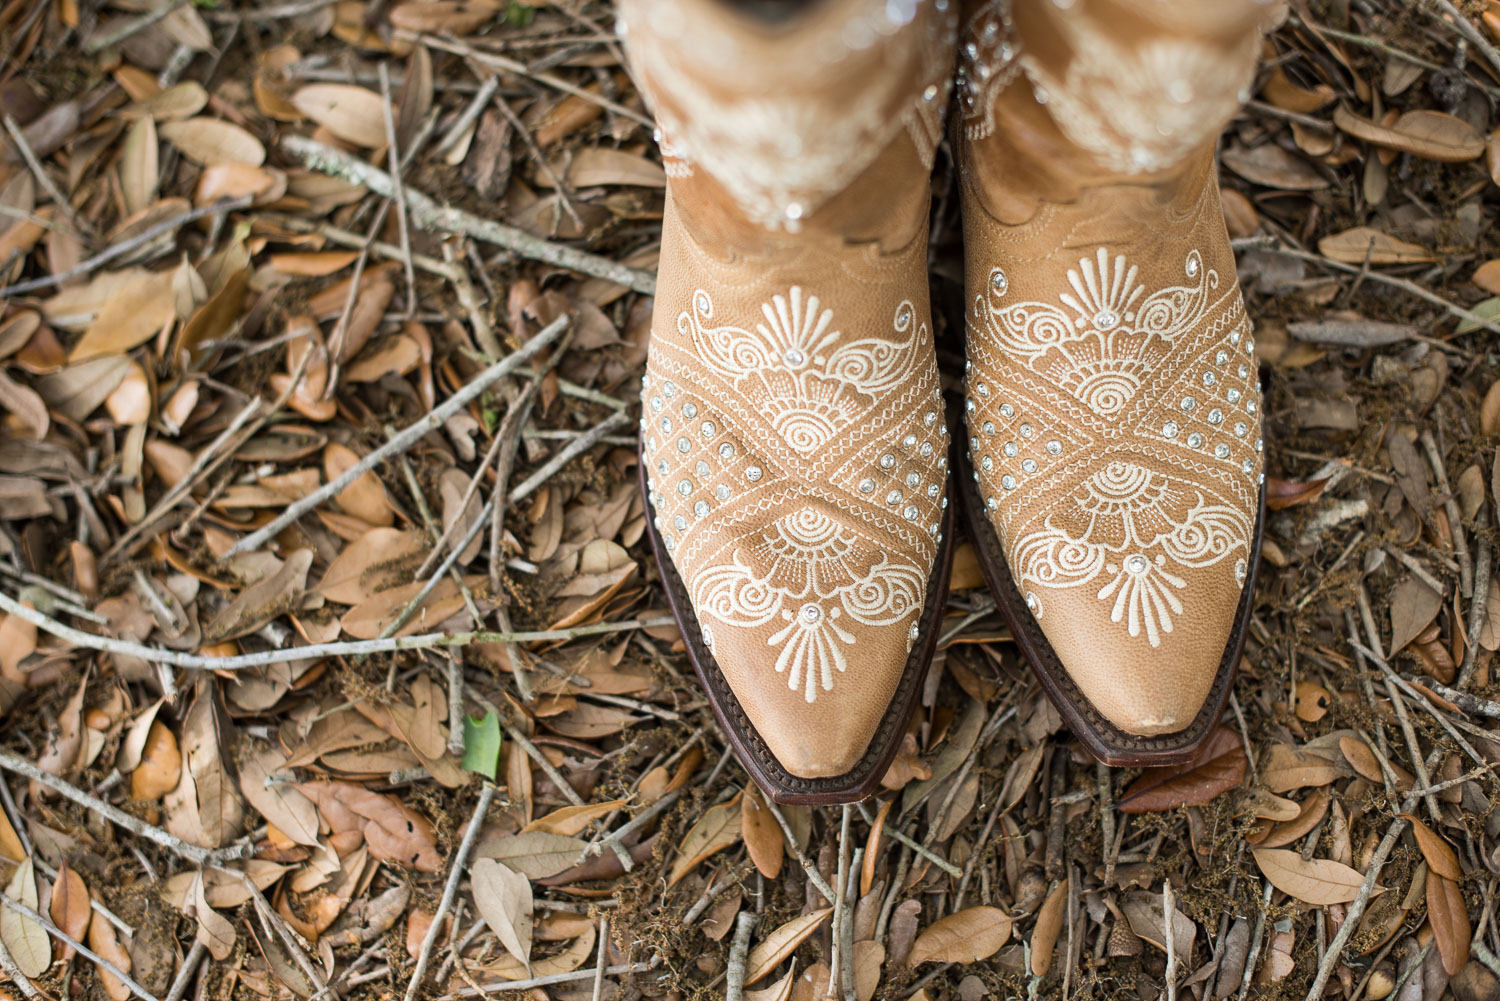 12 Gemstone detail on boots for texas wedding.jpg